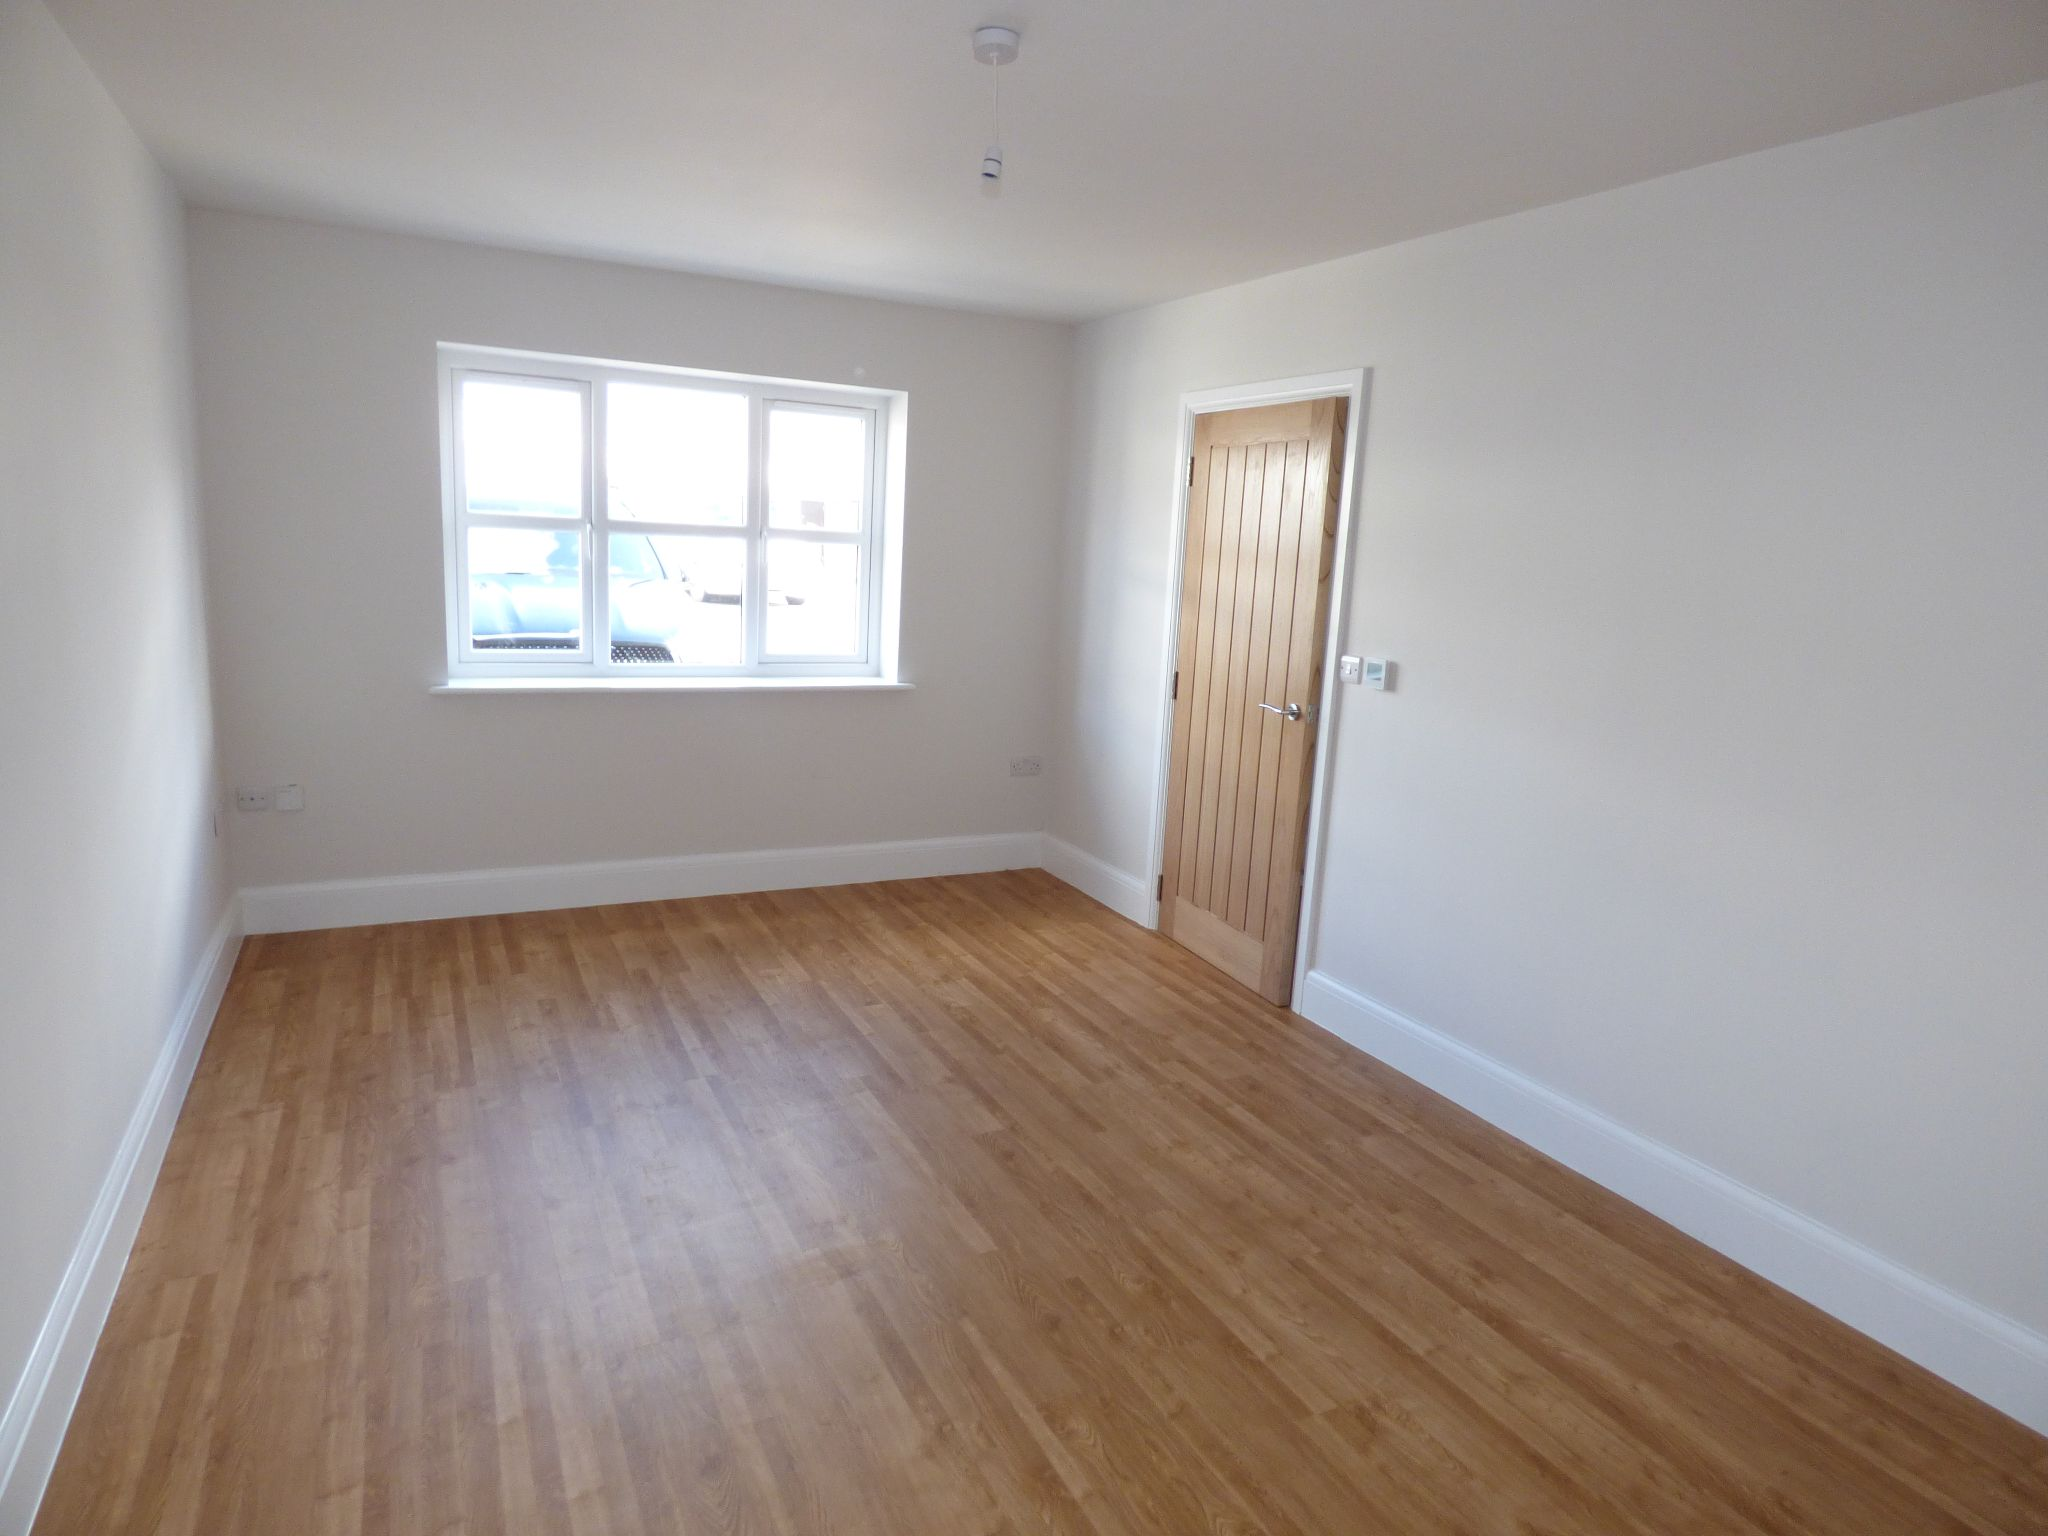 4 Bedroom Mews House For Sale - Photograph 7